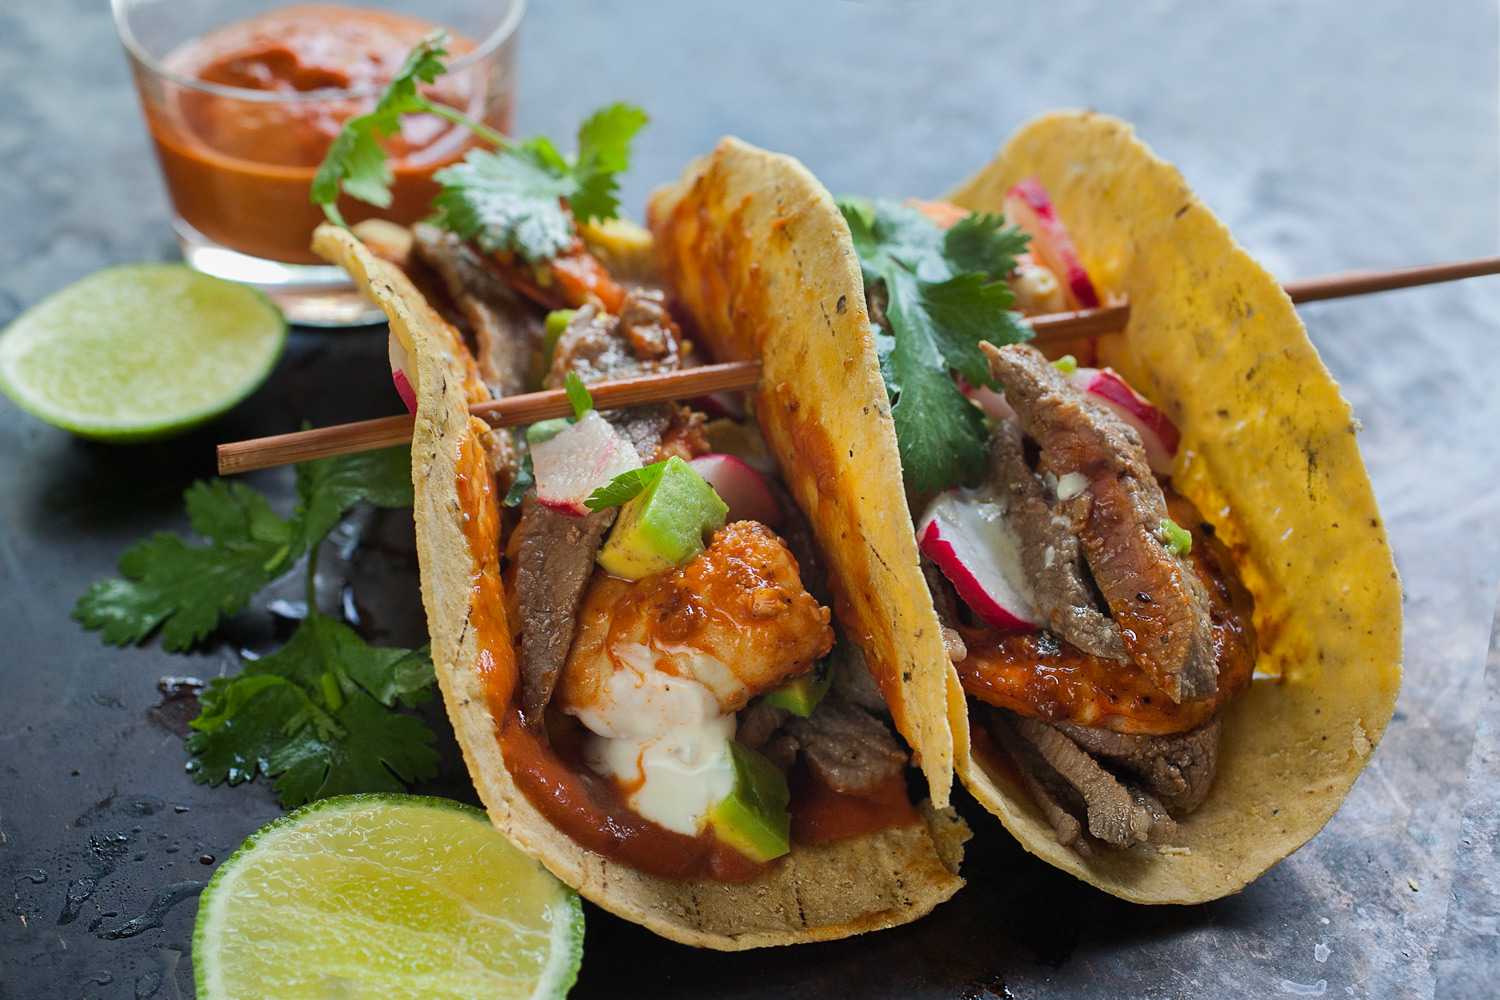 Turf N Surf >> Surf & Turf Tacos with Carne Asada and Spicy Shrimp - Hispanic Kitchen : Hispanic Kitchen